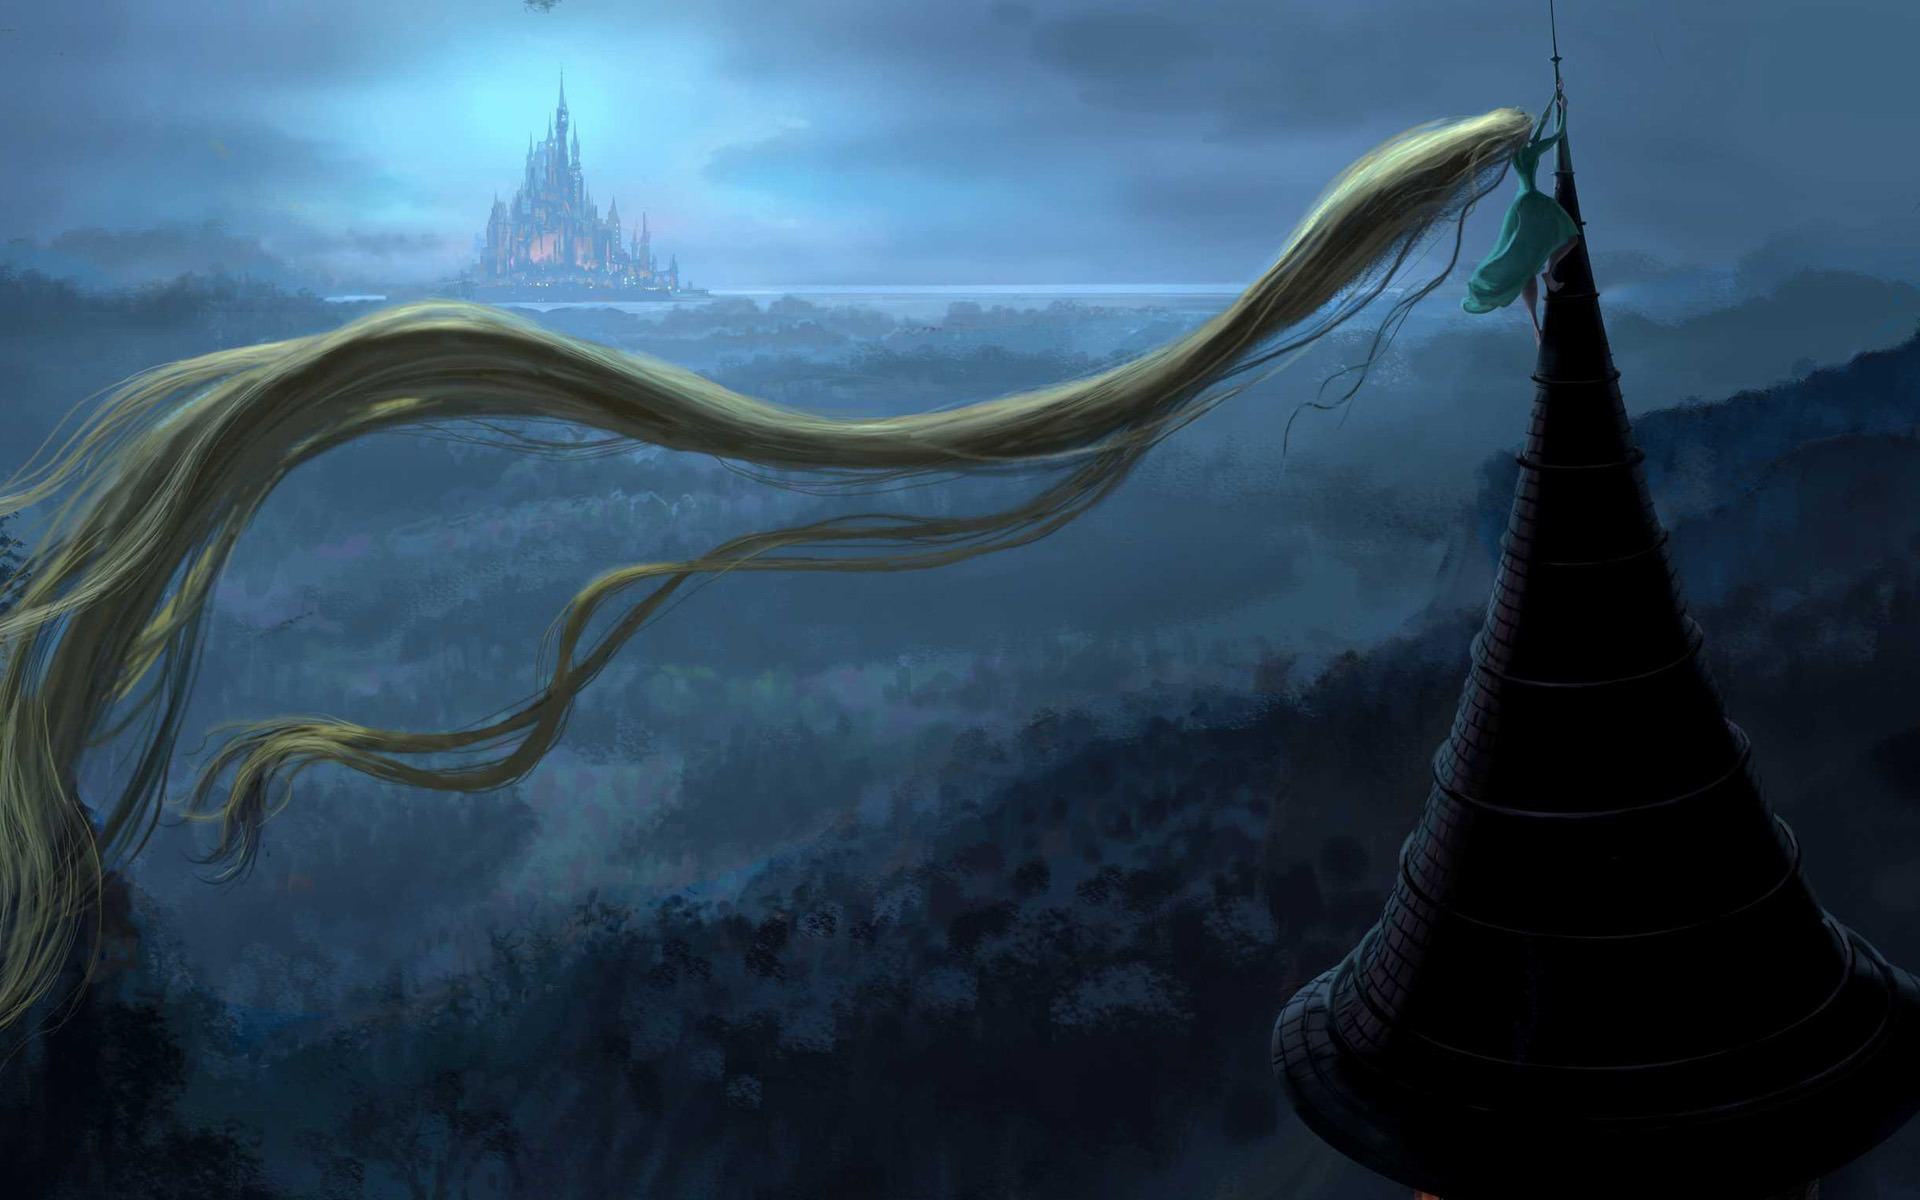 wallpaper.wiki-Free-Disney-Tangled-Wallpaper-Download-PIC-WPD008782